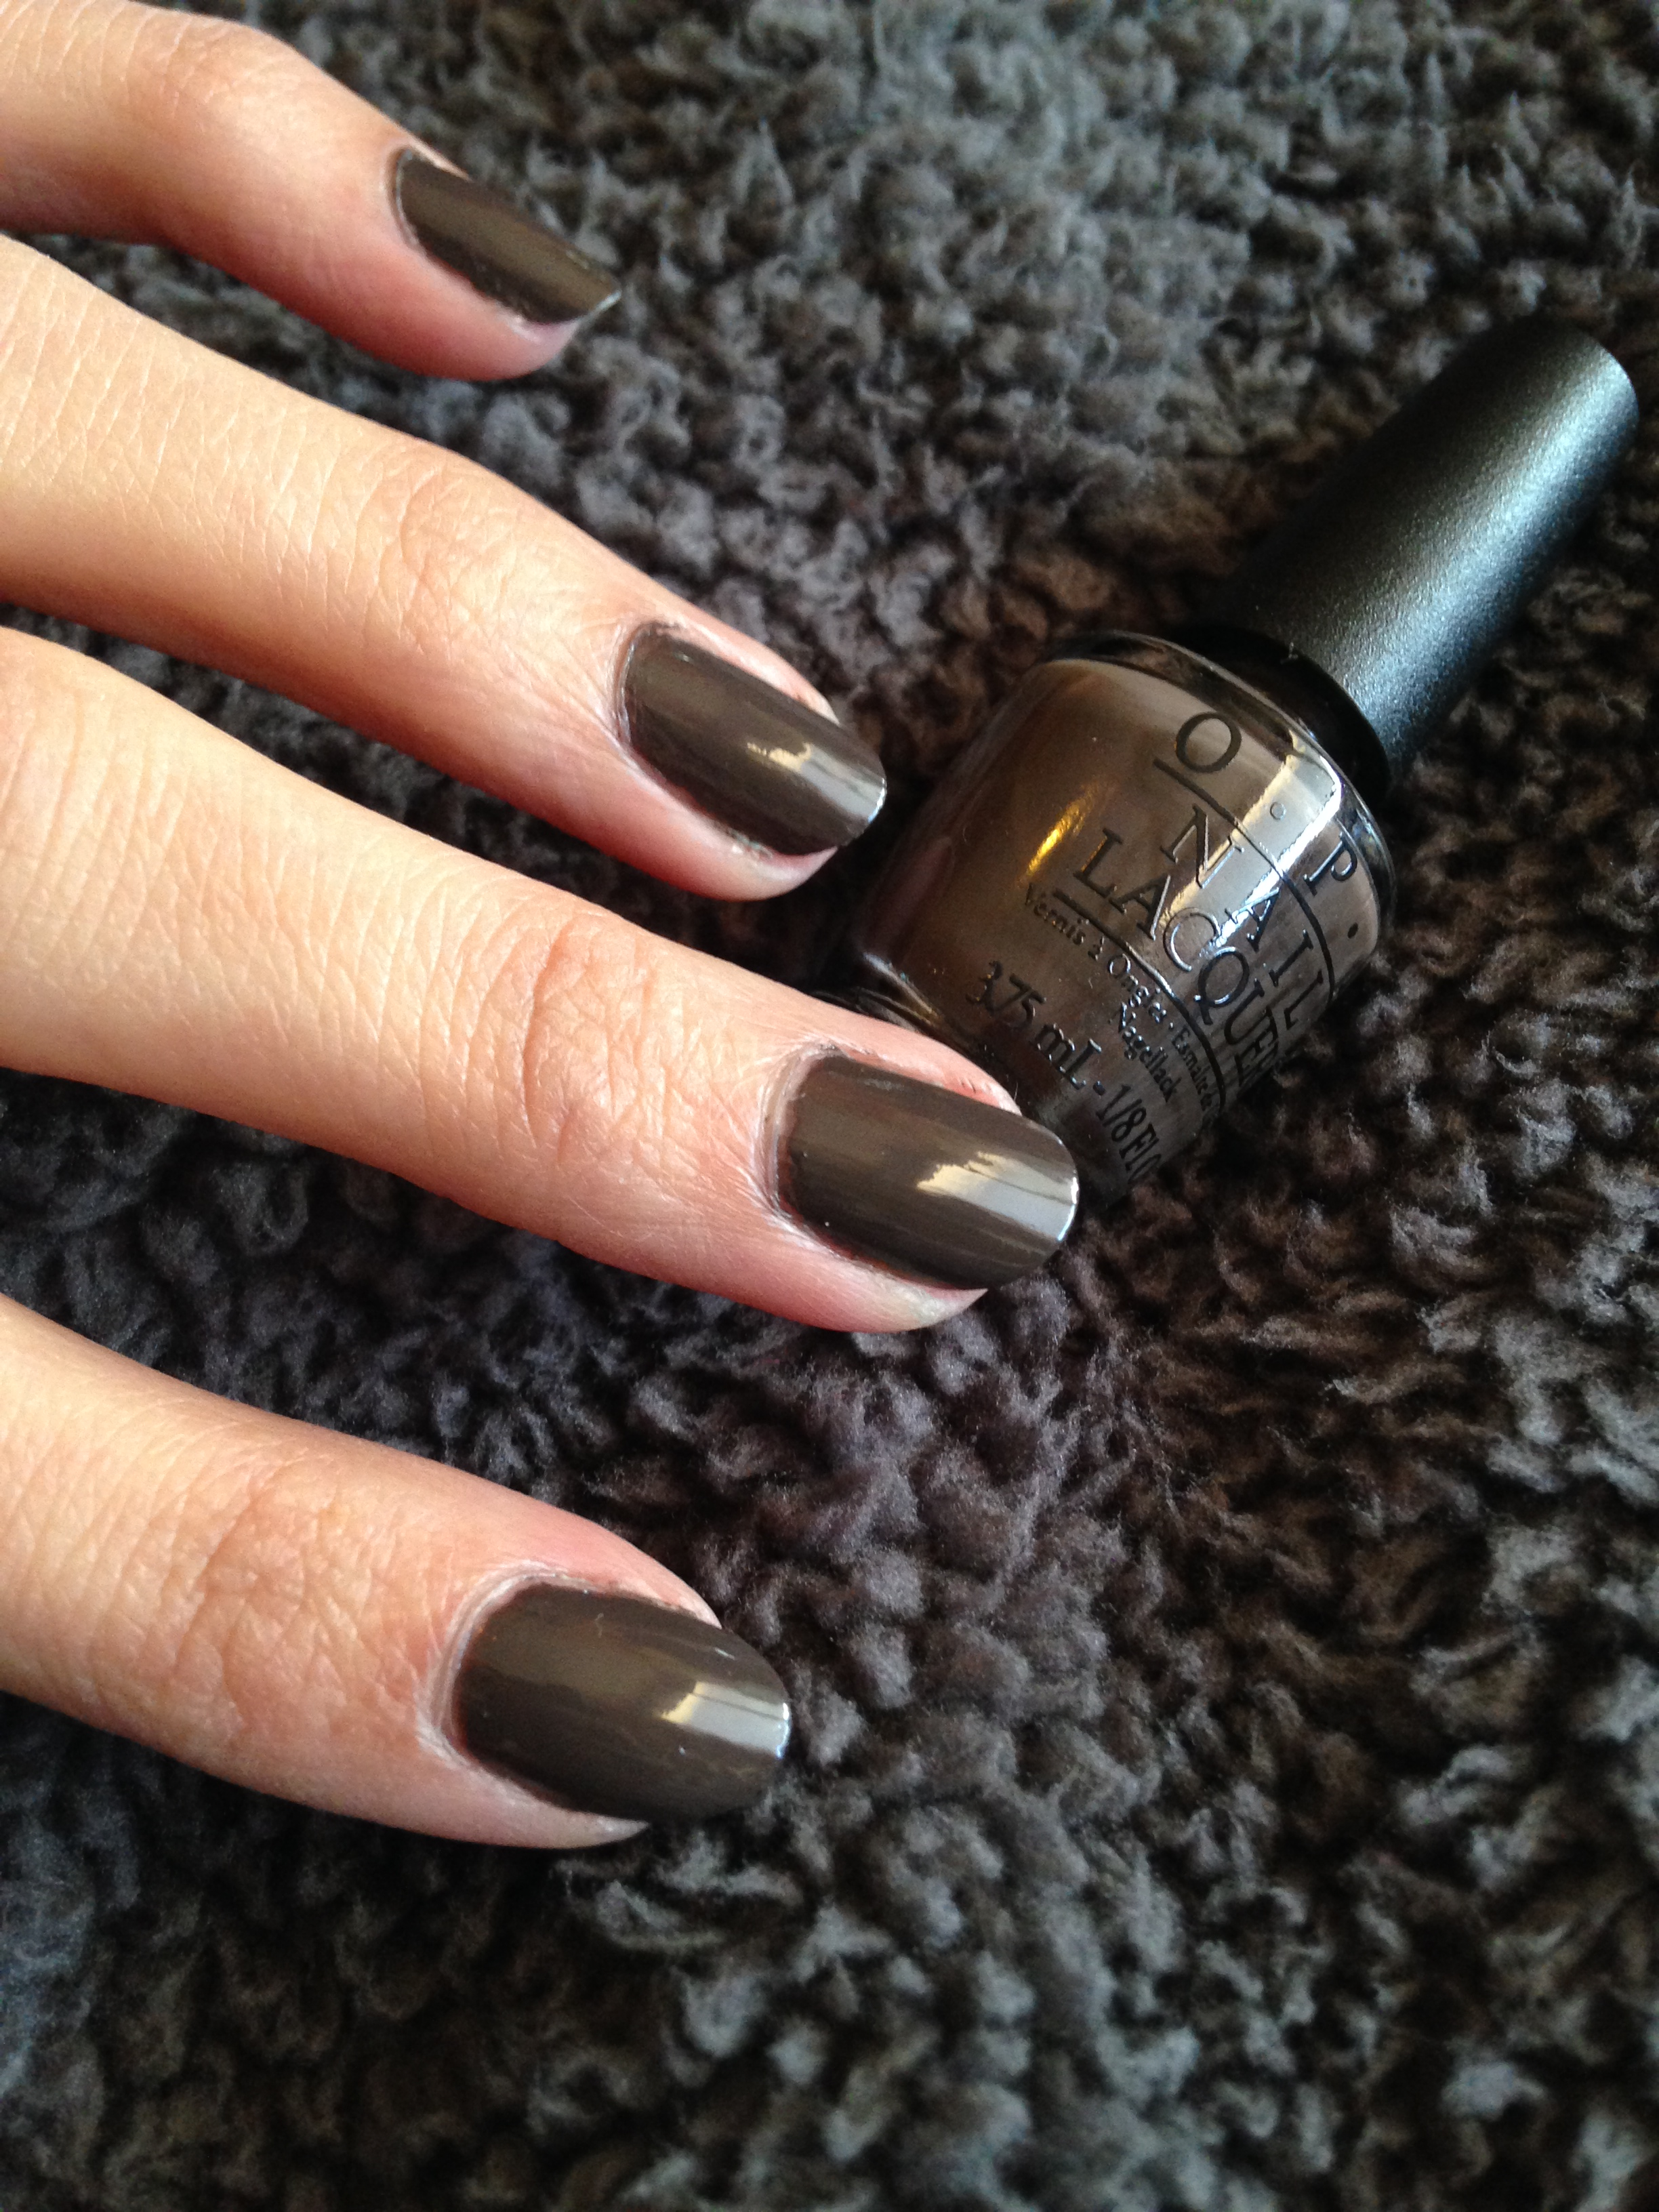 OPI Nordic: How Great is Your Dane?